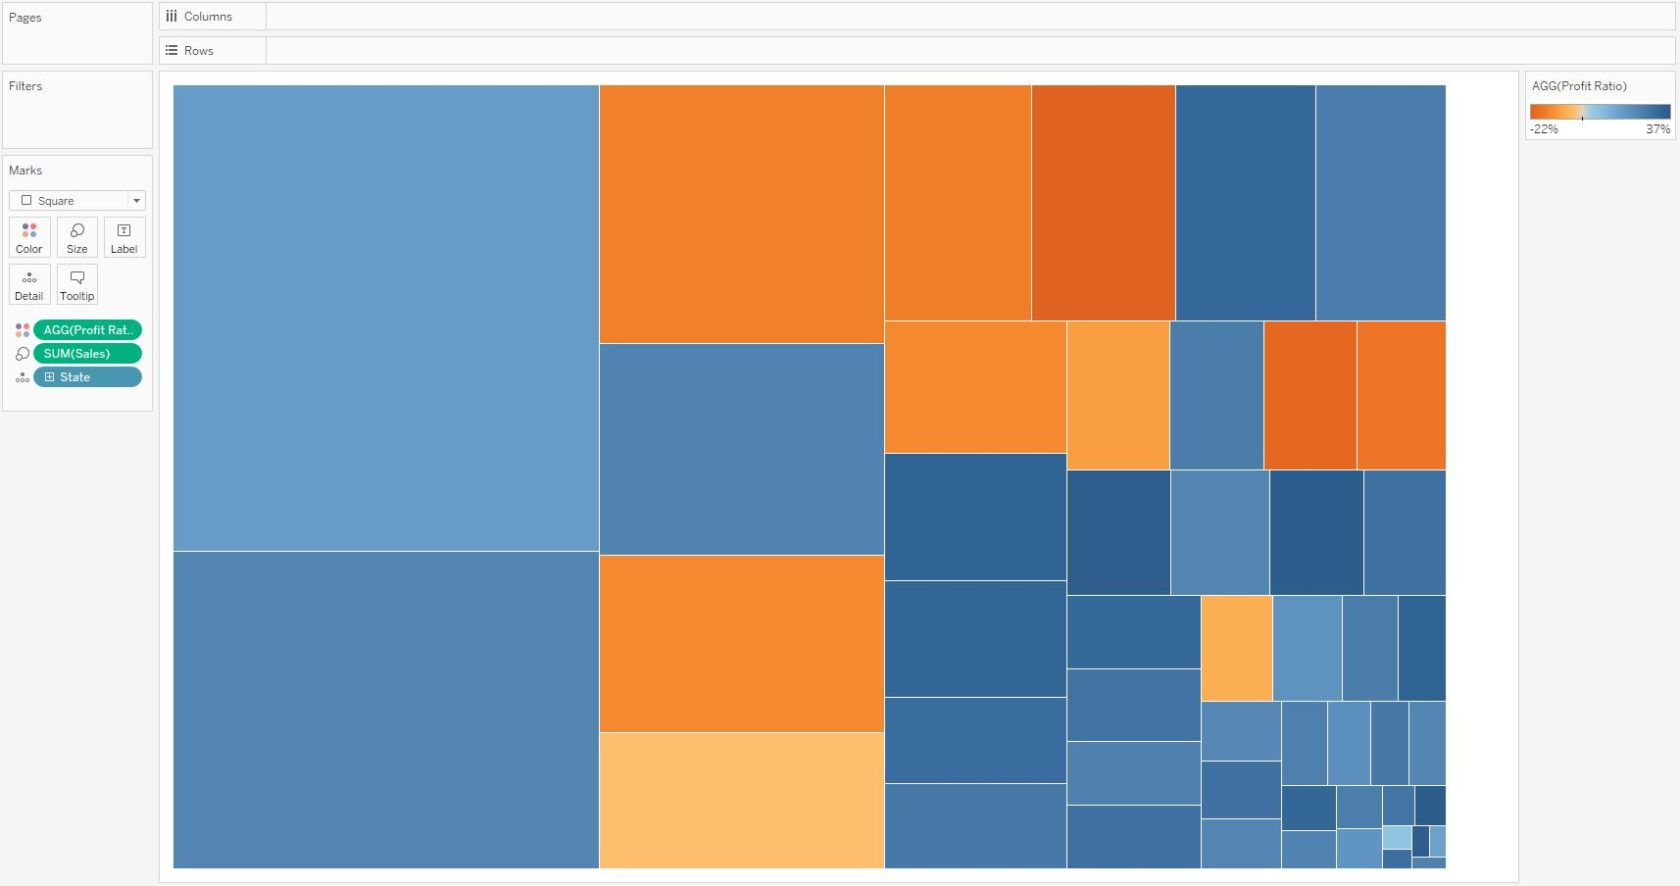 tableau-sales-and-profit-ratio-by-state-tree-map